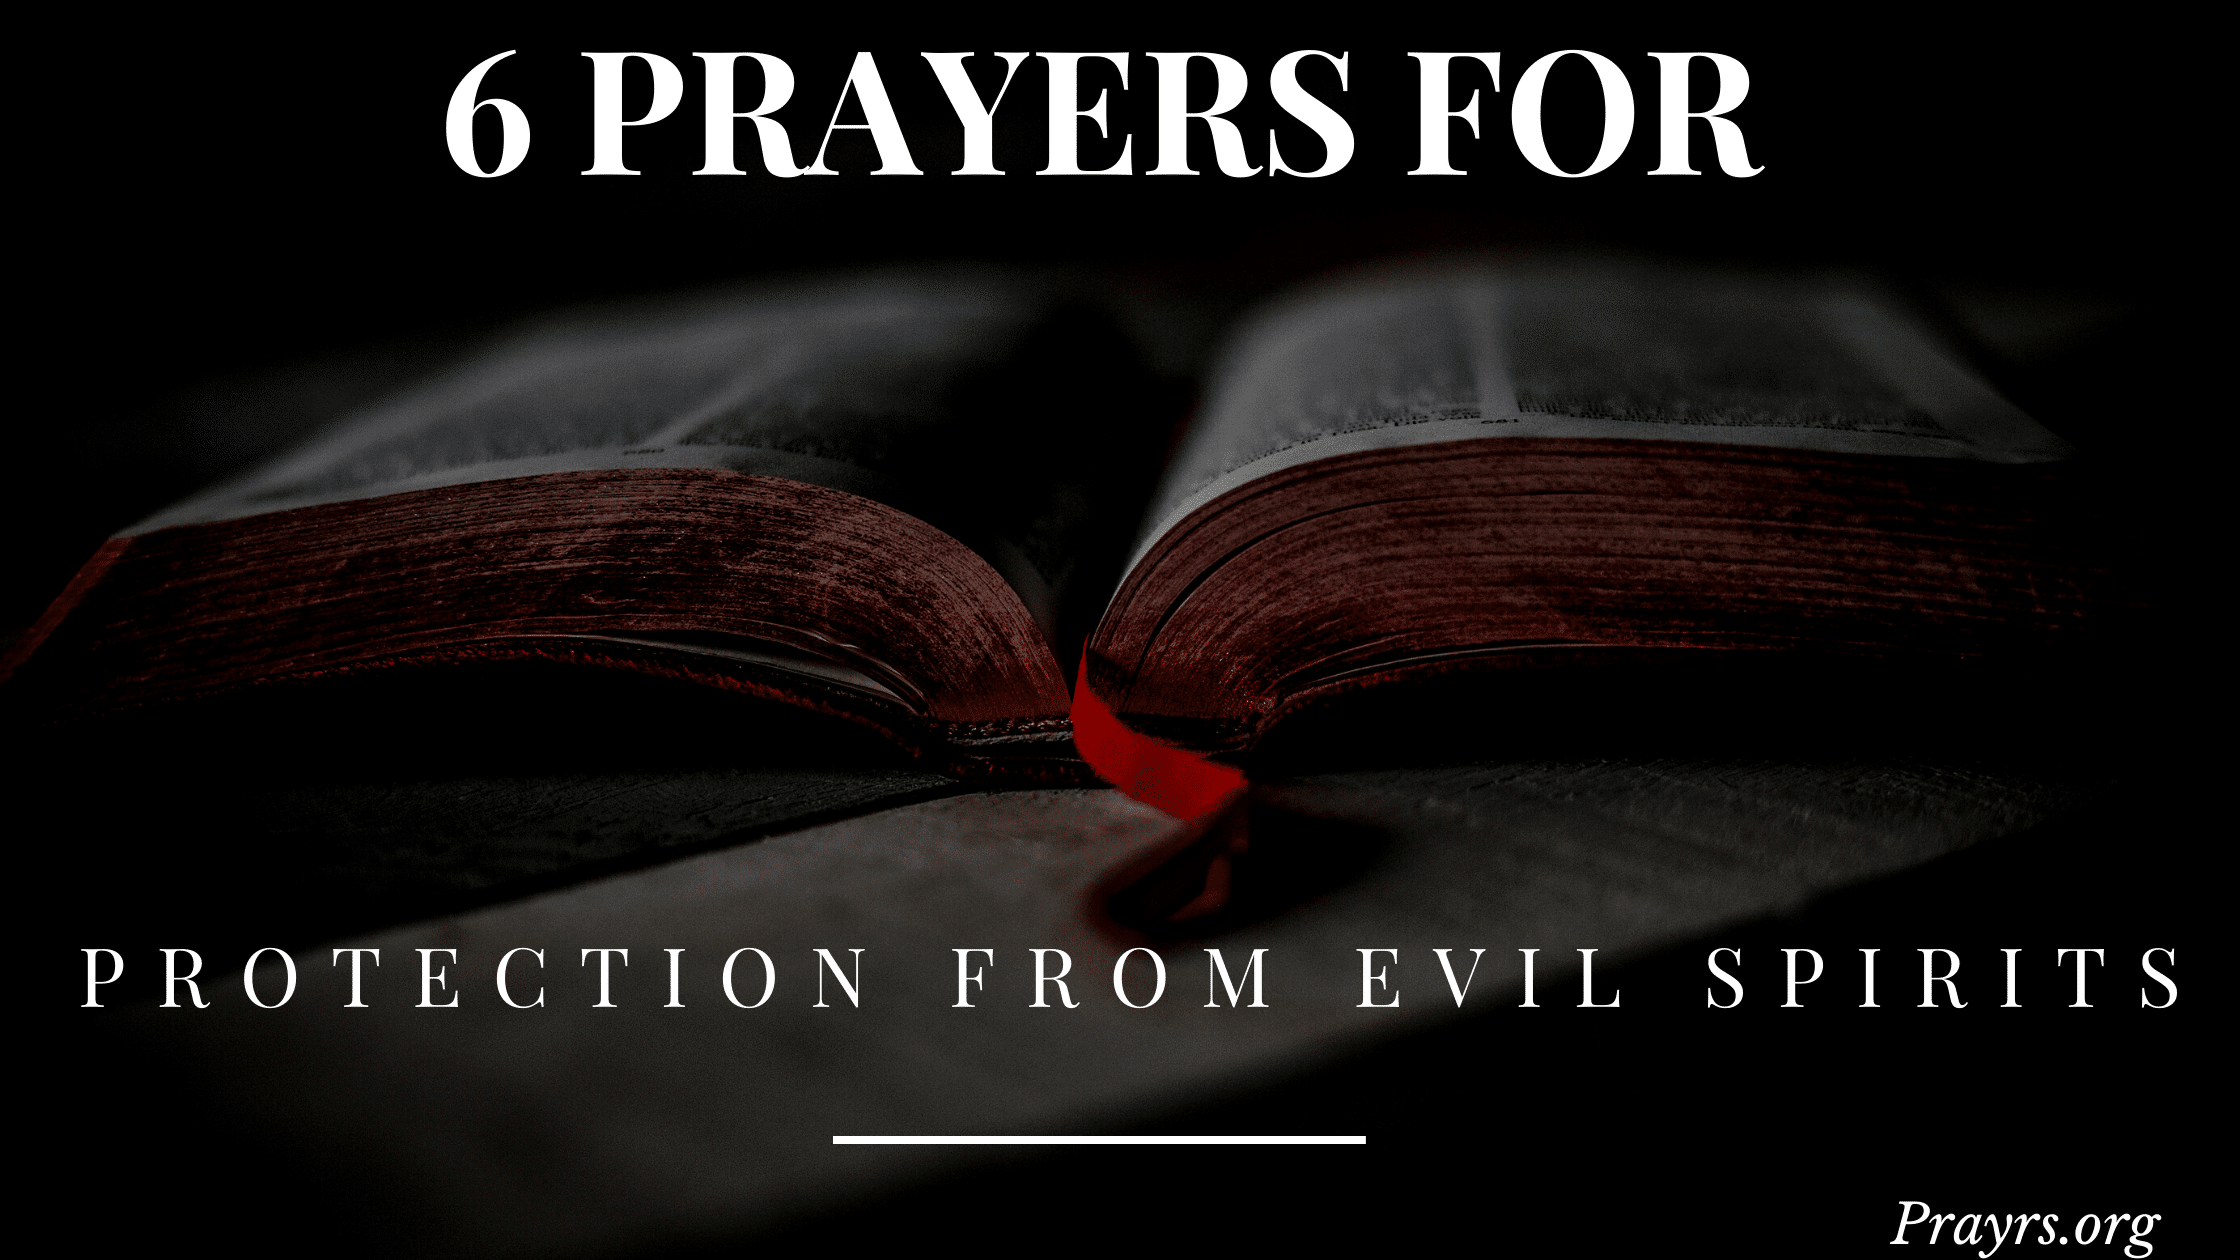 Prayers of Protection From Evil Spirits